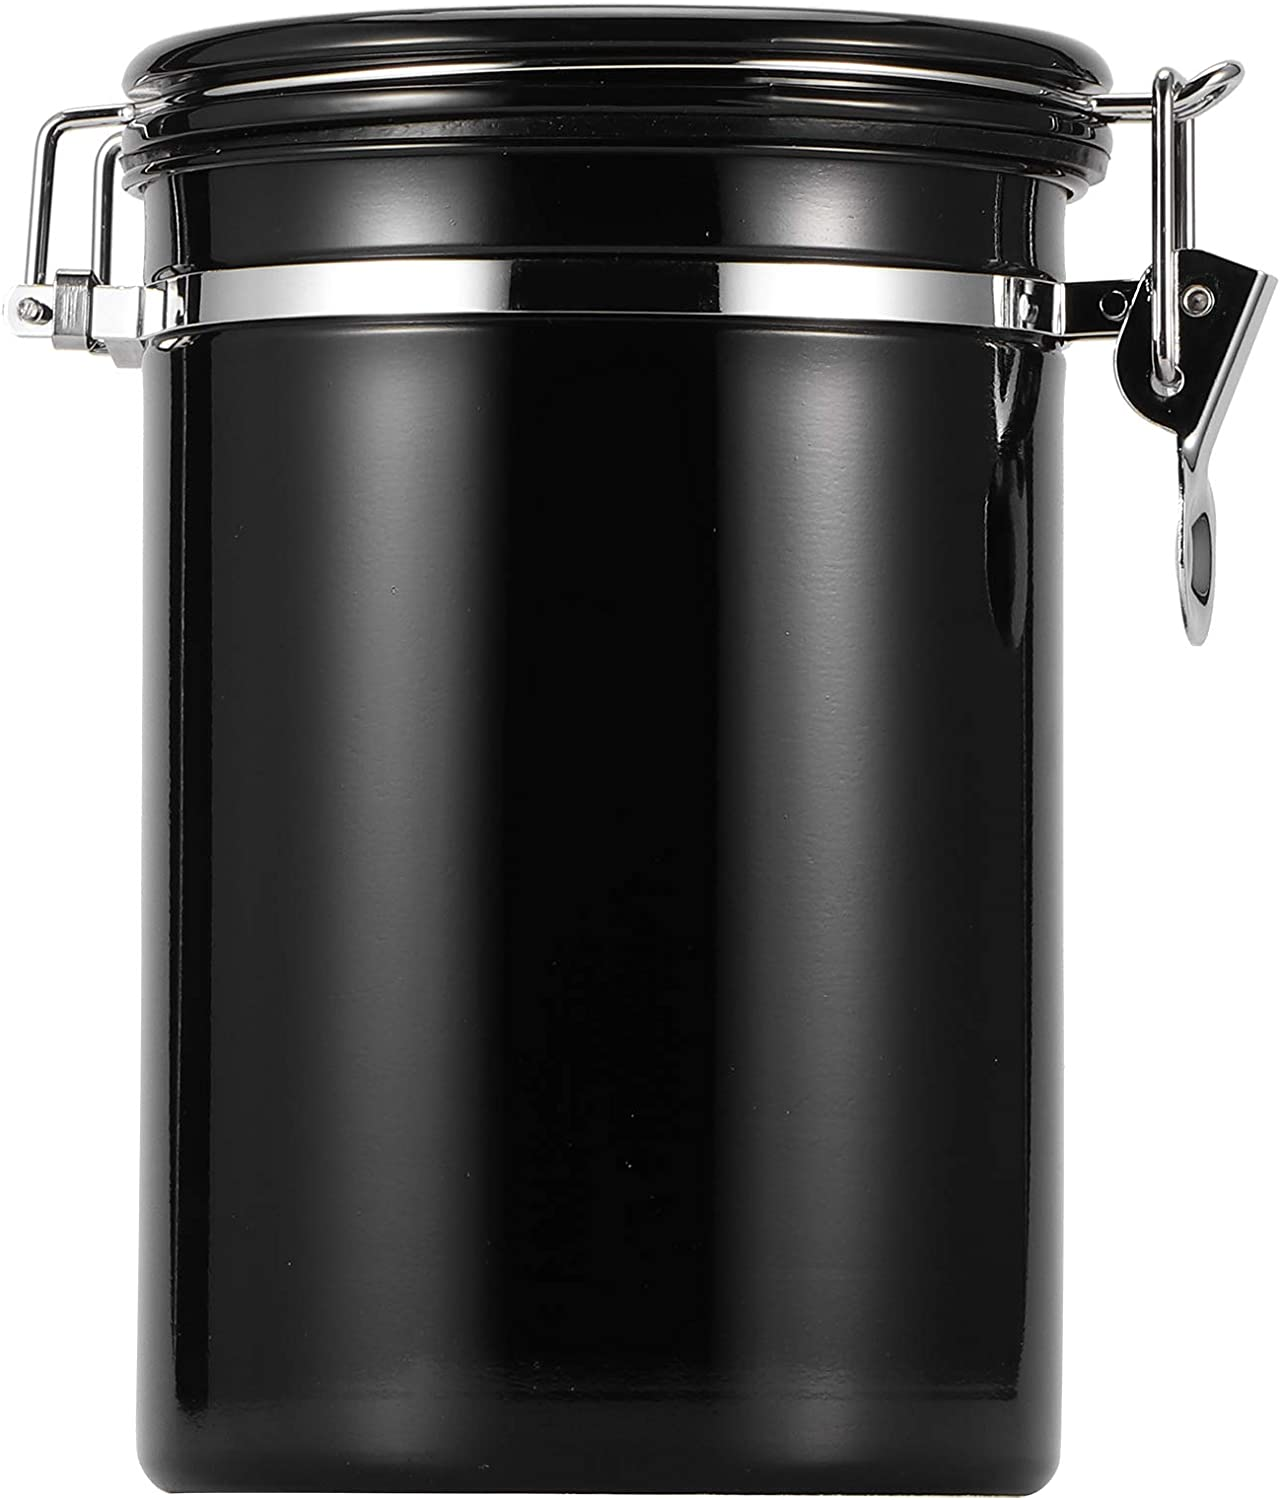 SanZHONGsd Coffee Pot Sealed Stainless Food Steel Kitchen Storag Large discharge Max 48% OFF sale